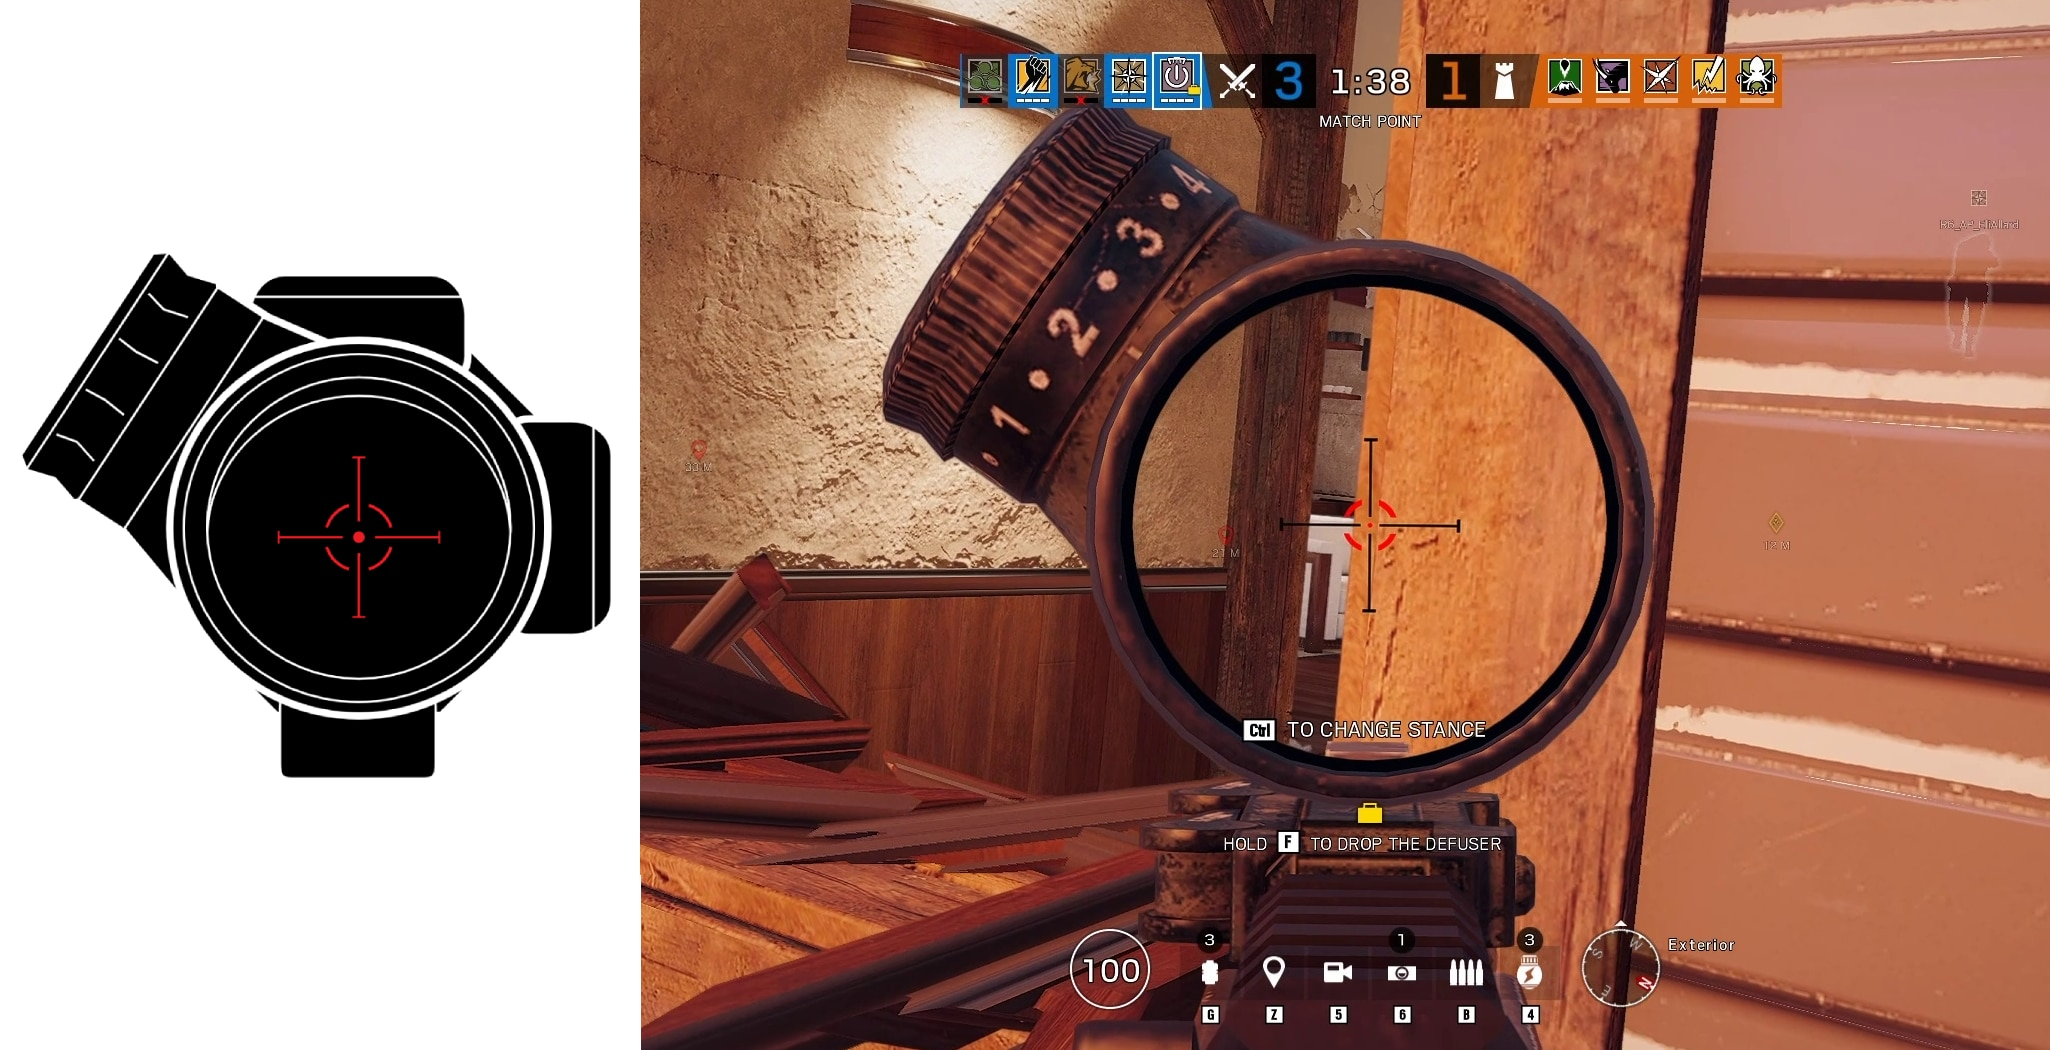 [R6S] Y5S3 New Scope 2.0x